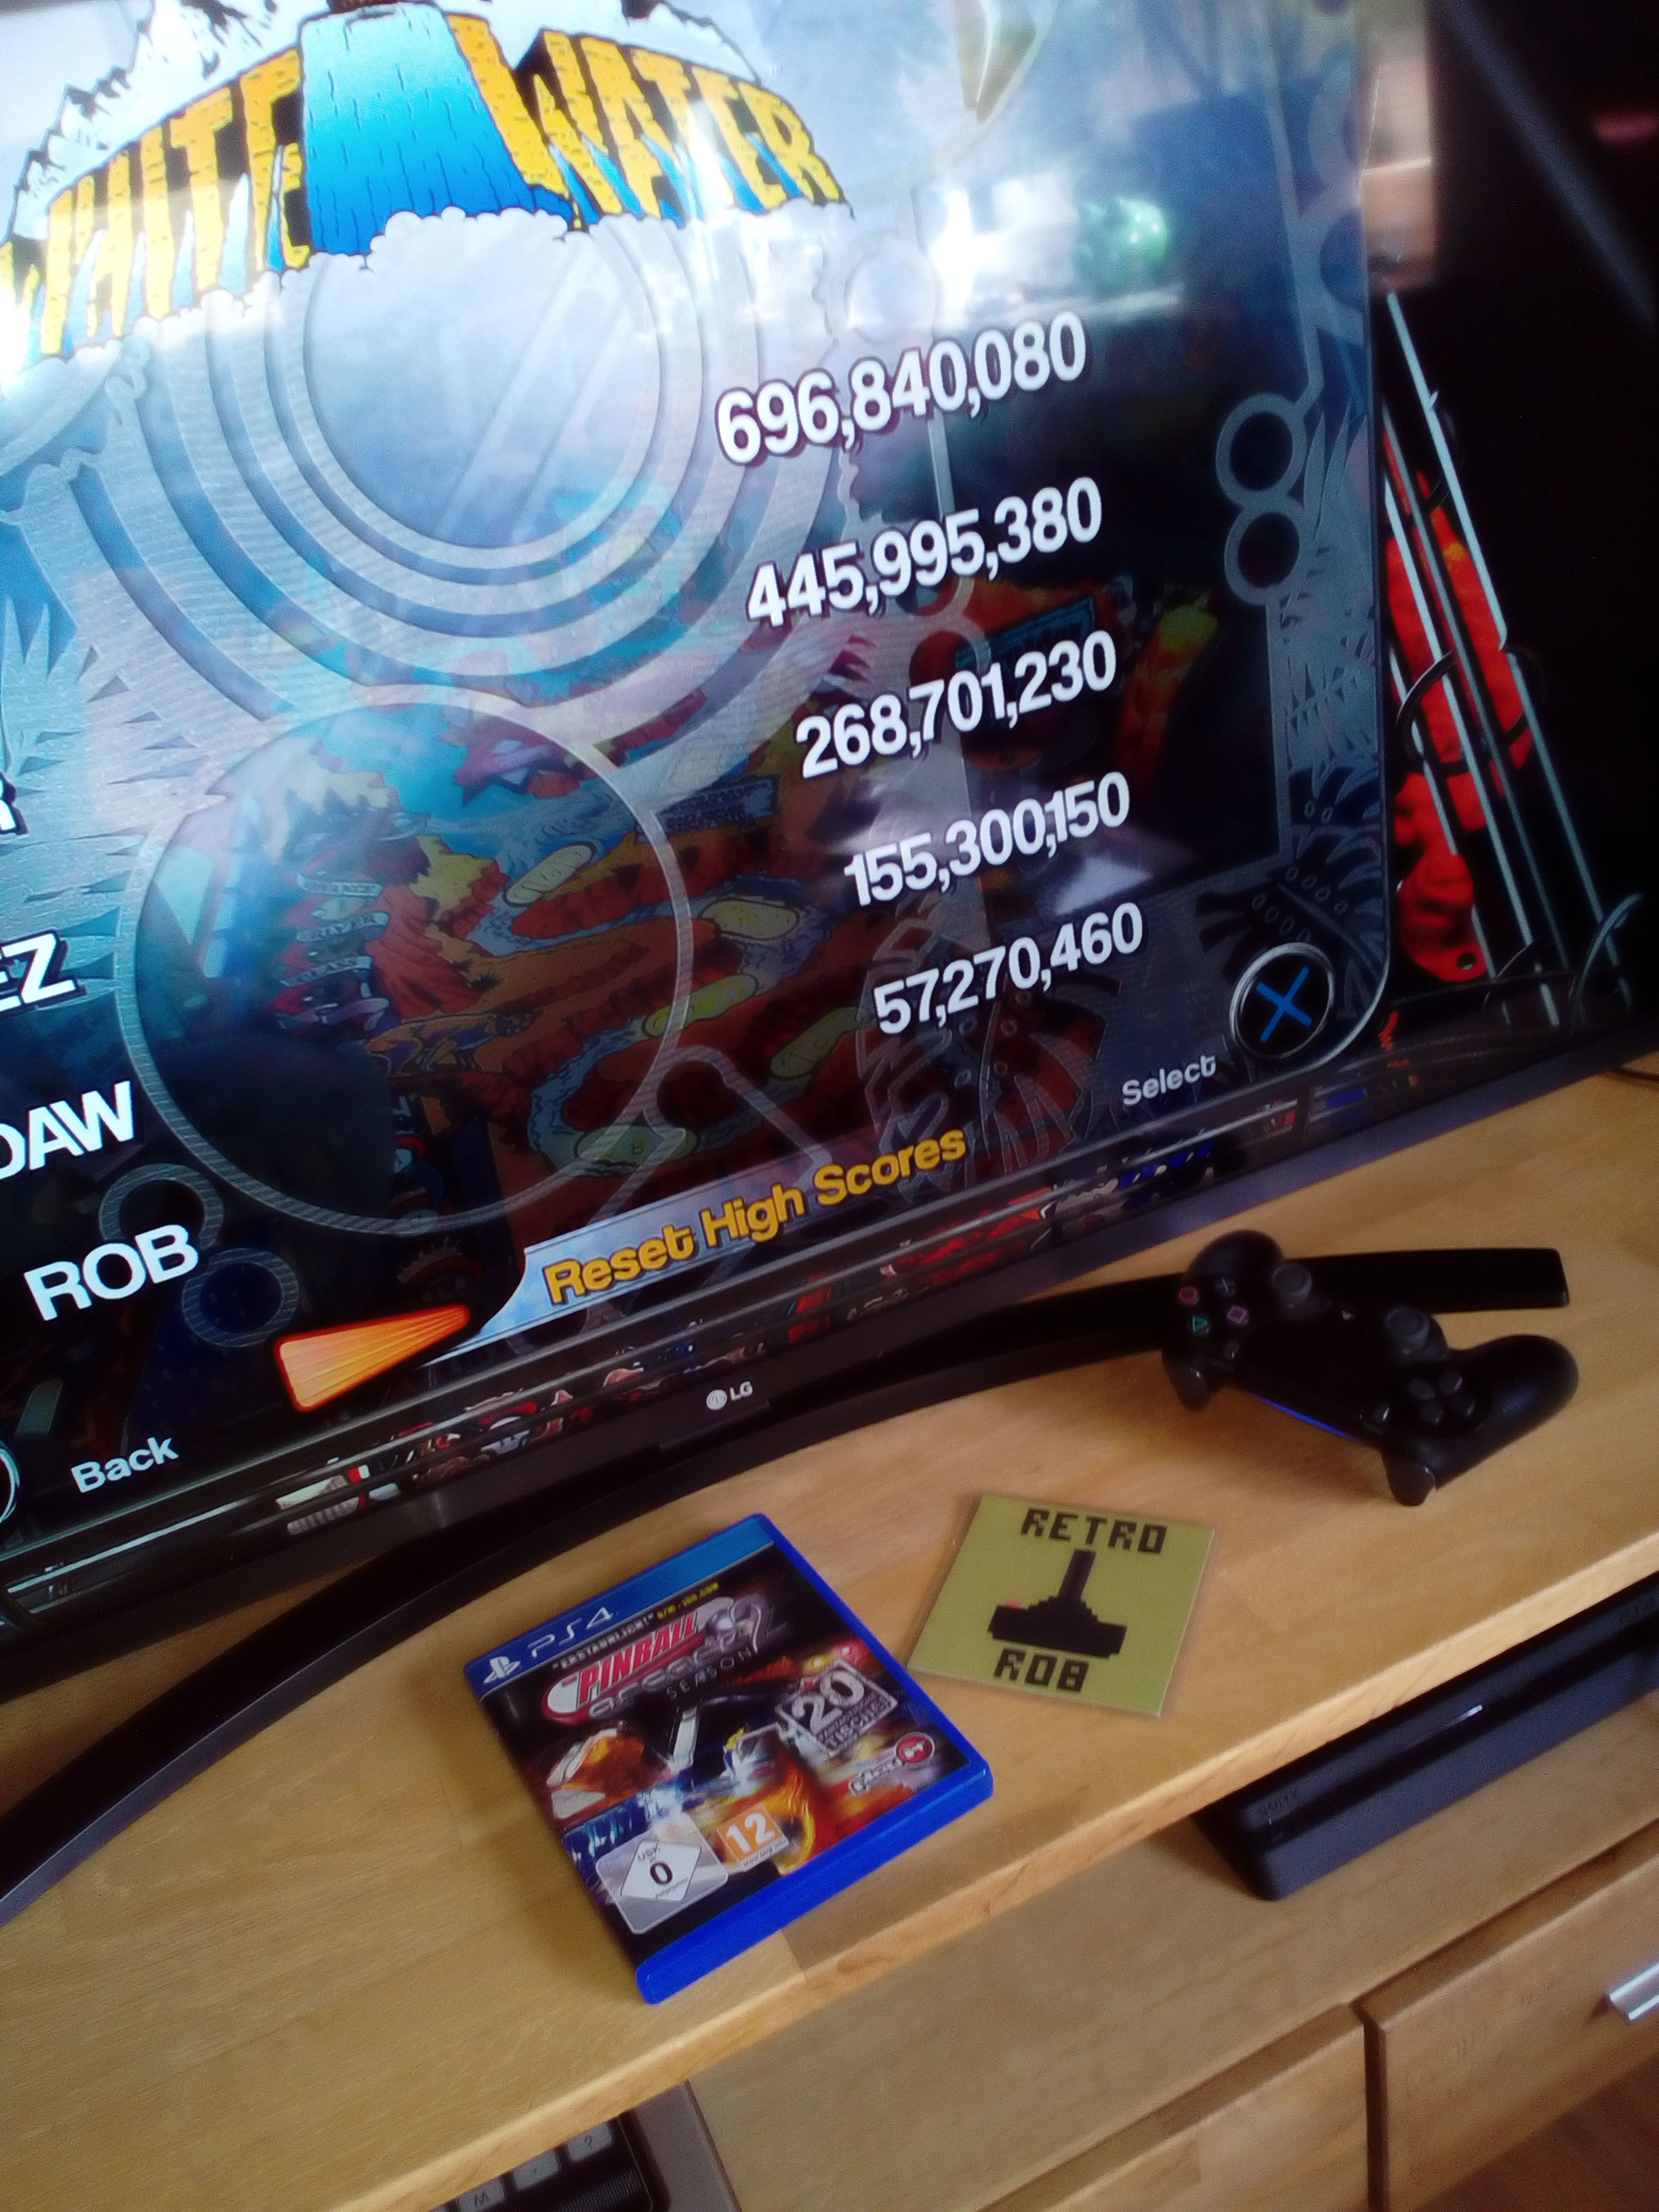 RetroRob: Pinball Arcade: White Water (Playstation 4) 57,270,460 points on 2020-05-17 05:25:31